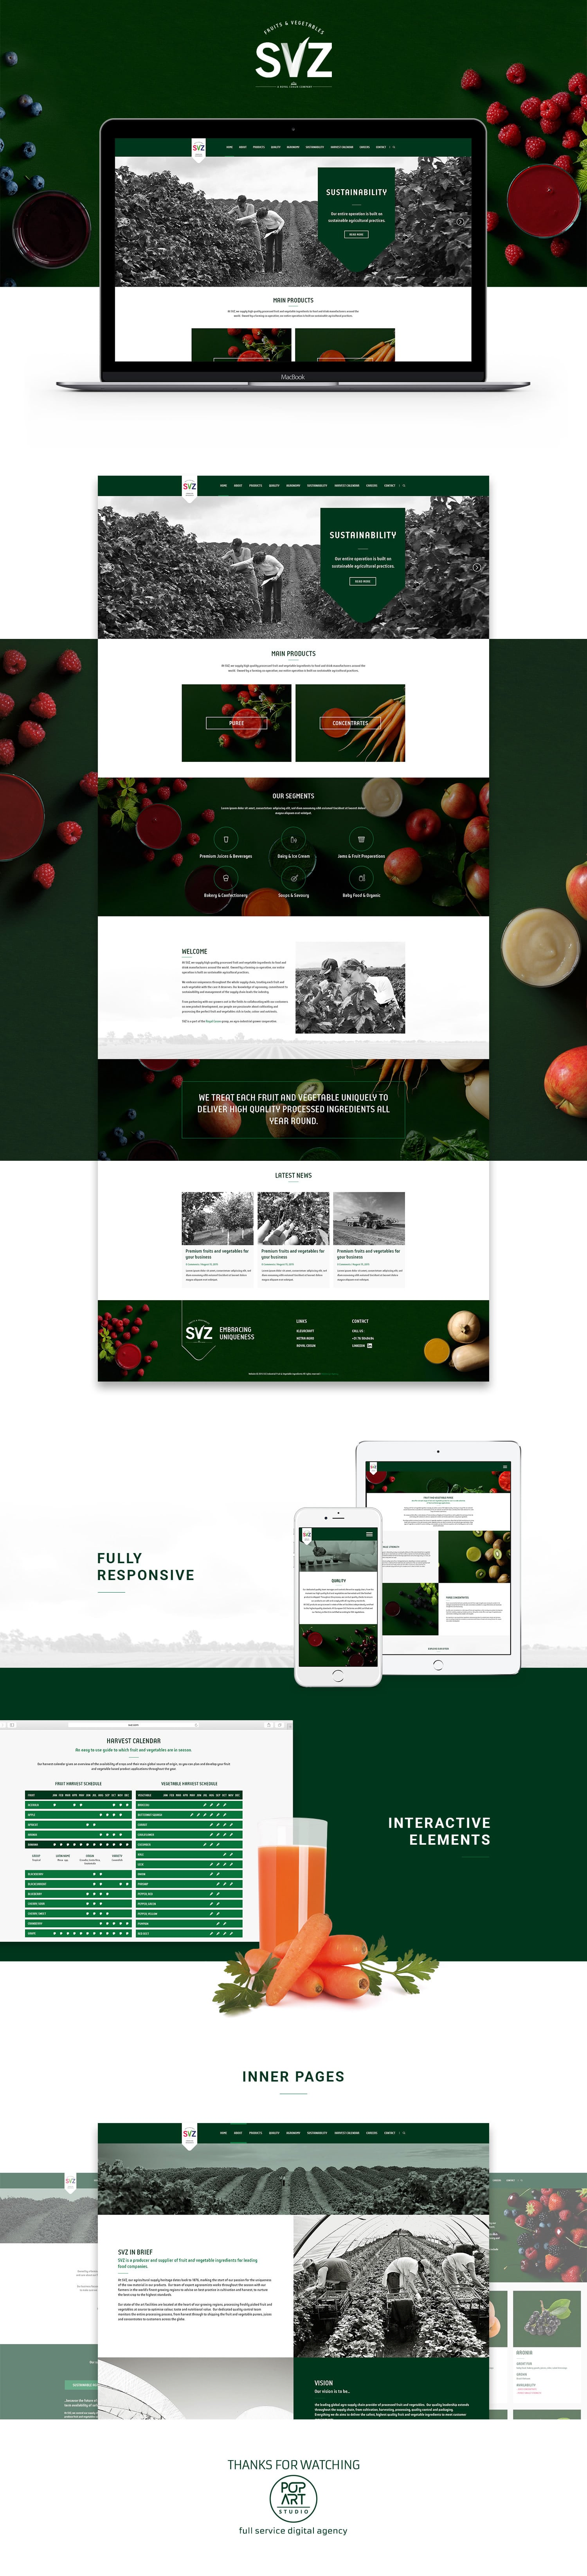 Web design and development for a Dutch agro supplier SVZ